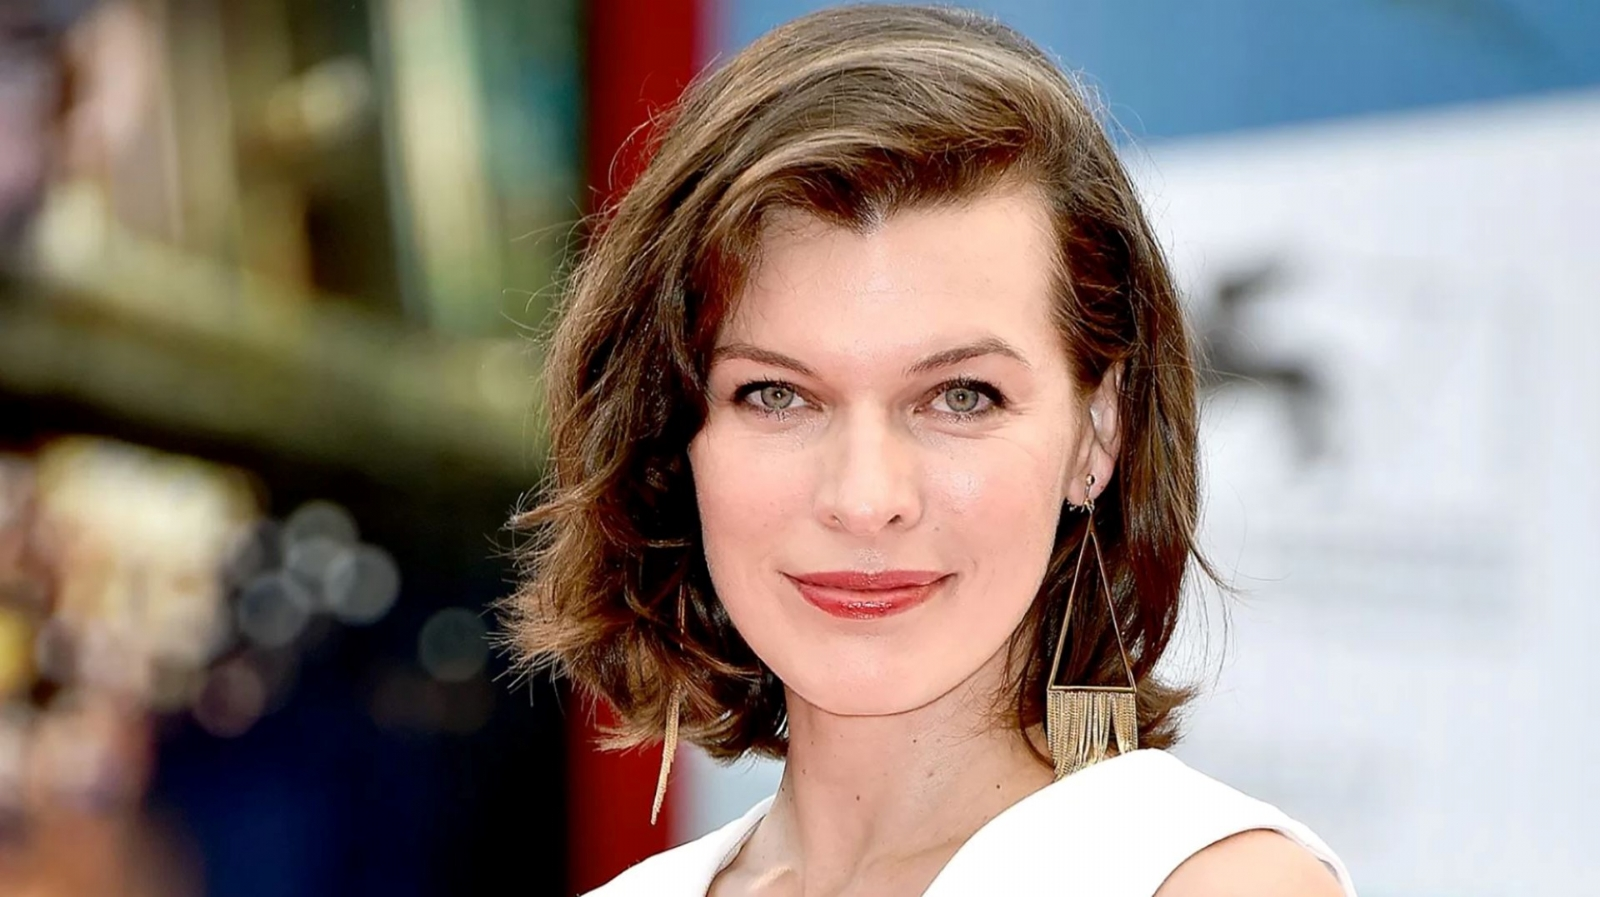 Llegará adaptación de 'Monster Hunter' con Milla Jovovich